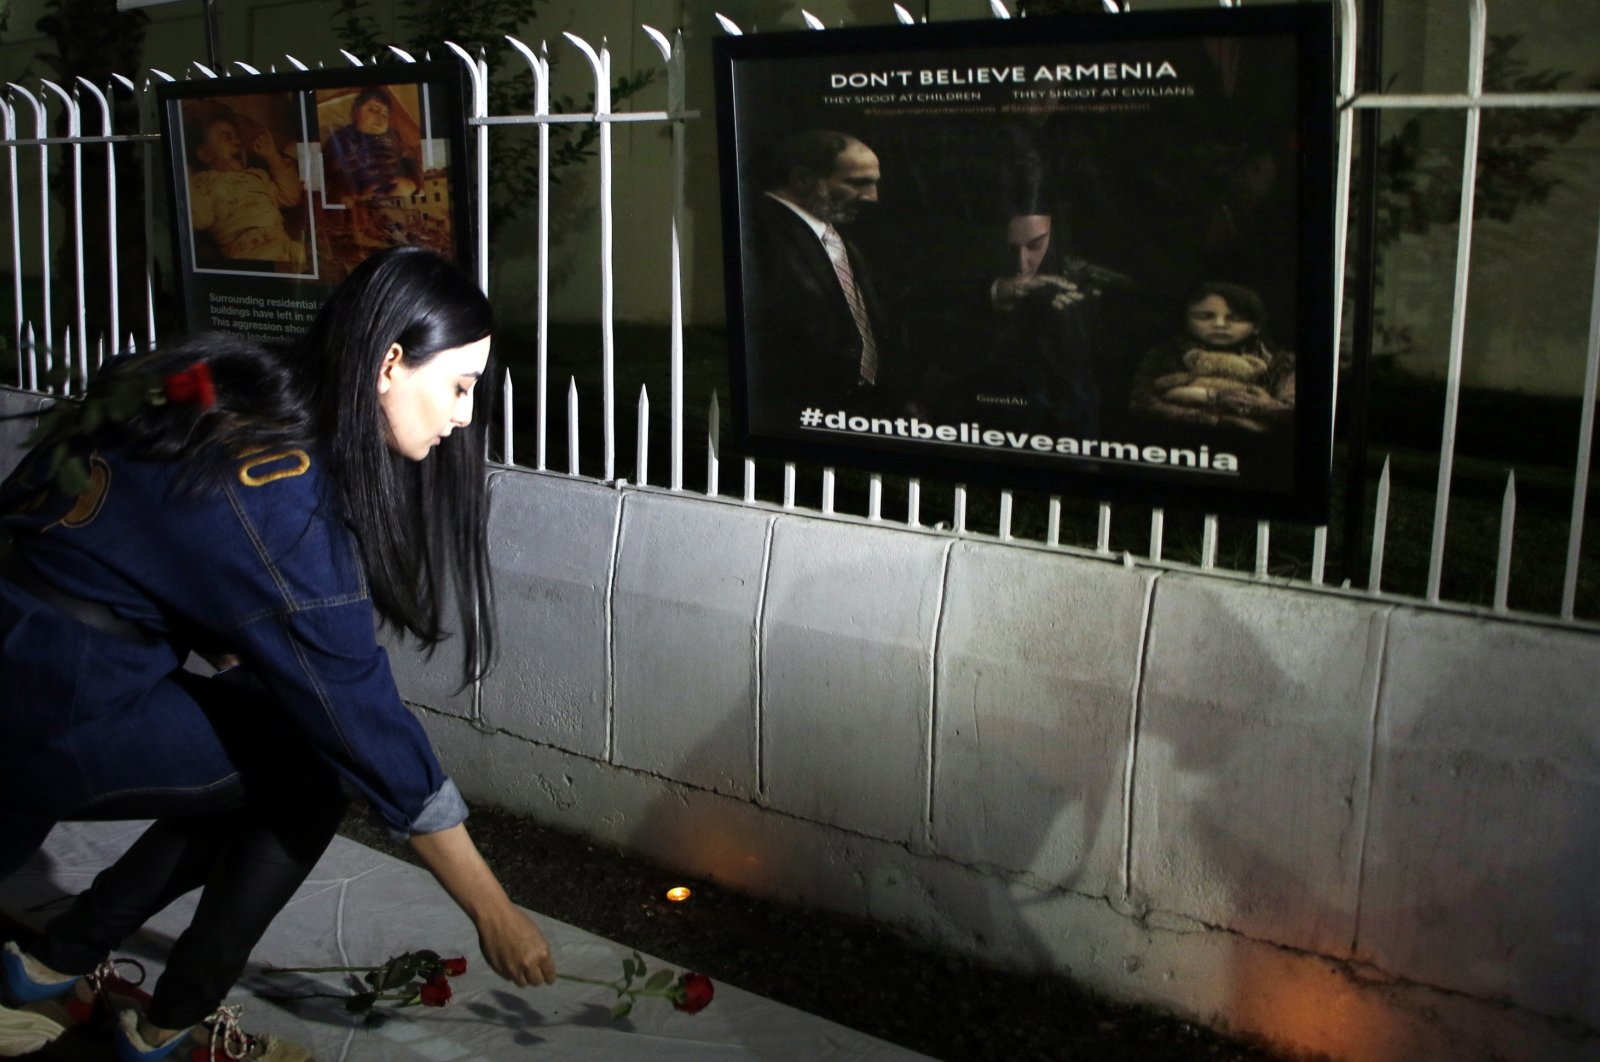 A person lays flowers as diplomats and staff of different foreign embassies gather outside the embassy of Azerbaijan during a memorial for the children killed by Armenian separatists, in Islamabad, Pakistan, Oct. 26, 2020. (EPA Photo)